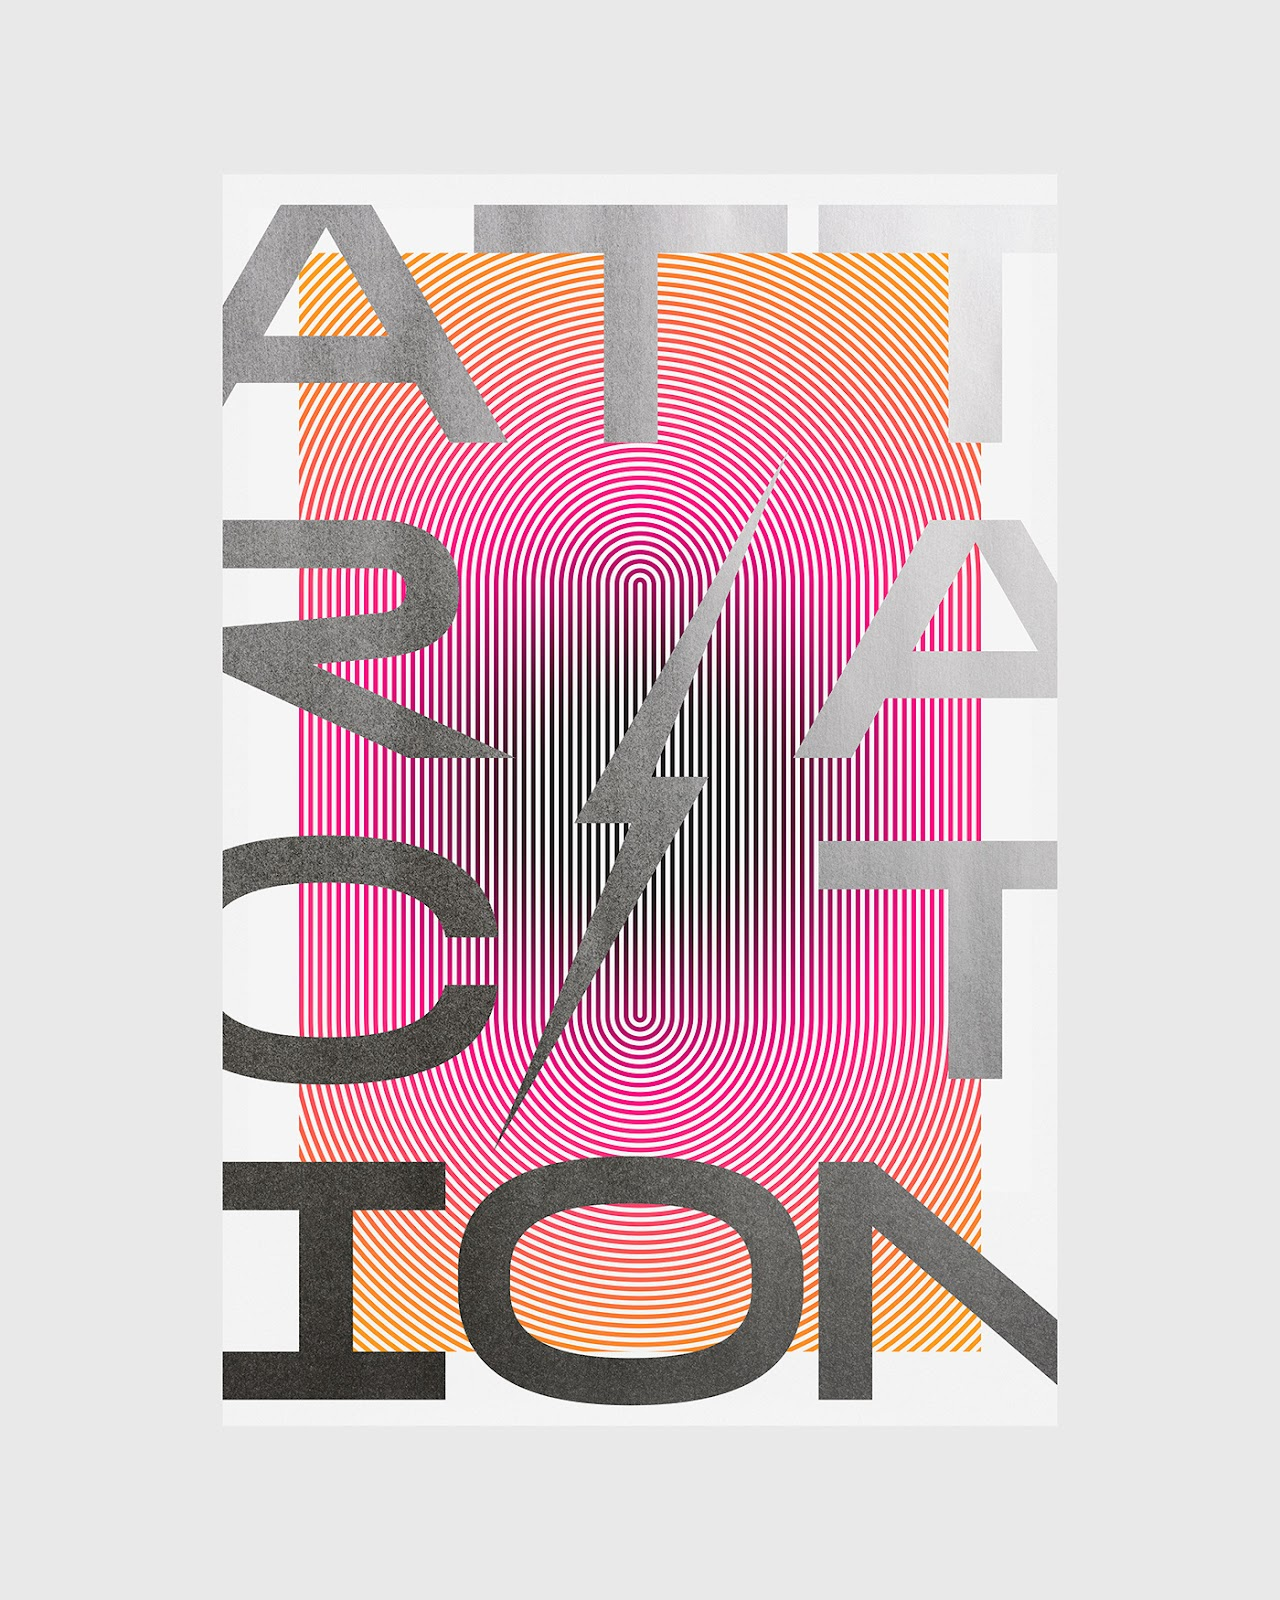 Attraction poster by Xtian Miller